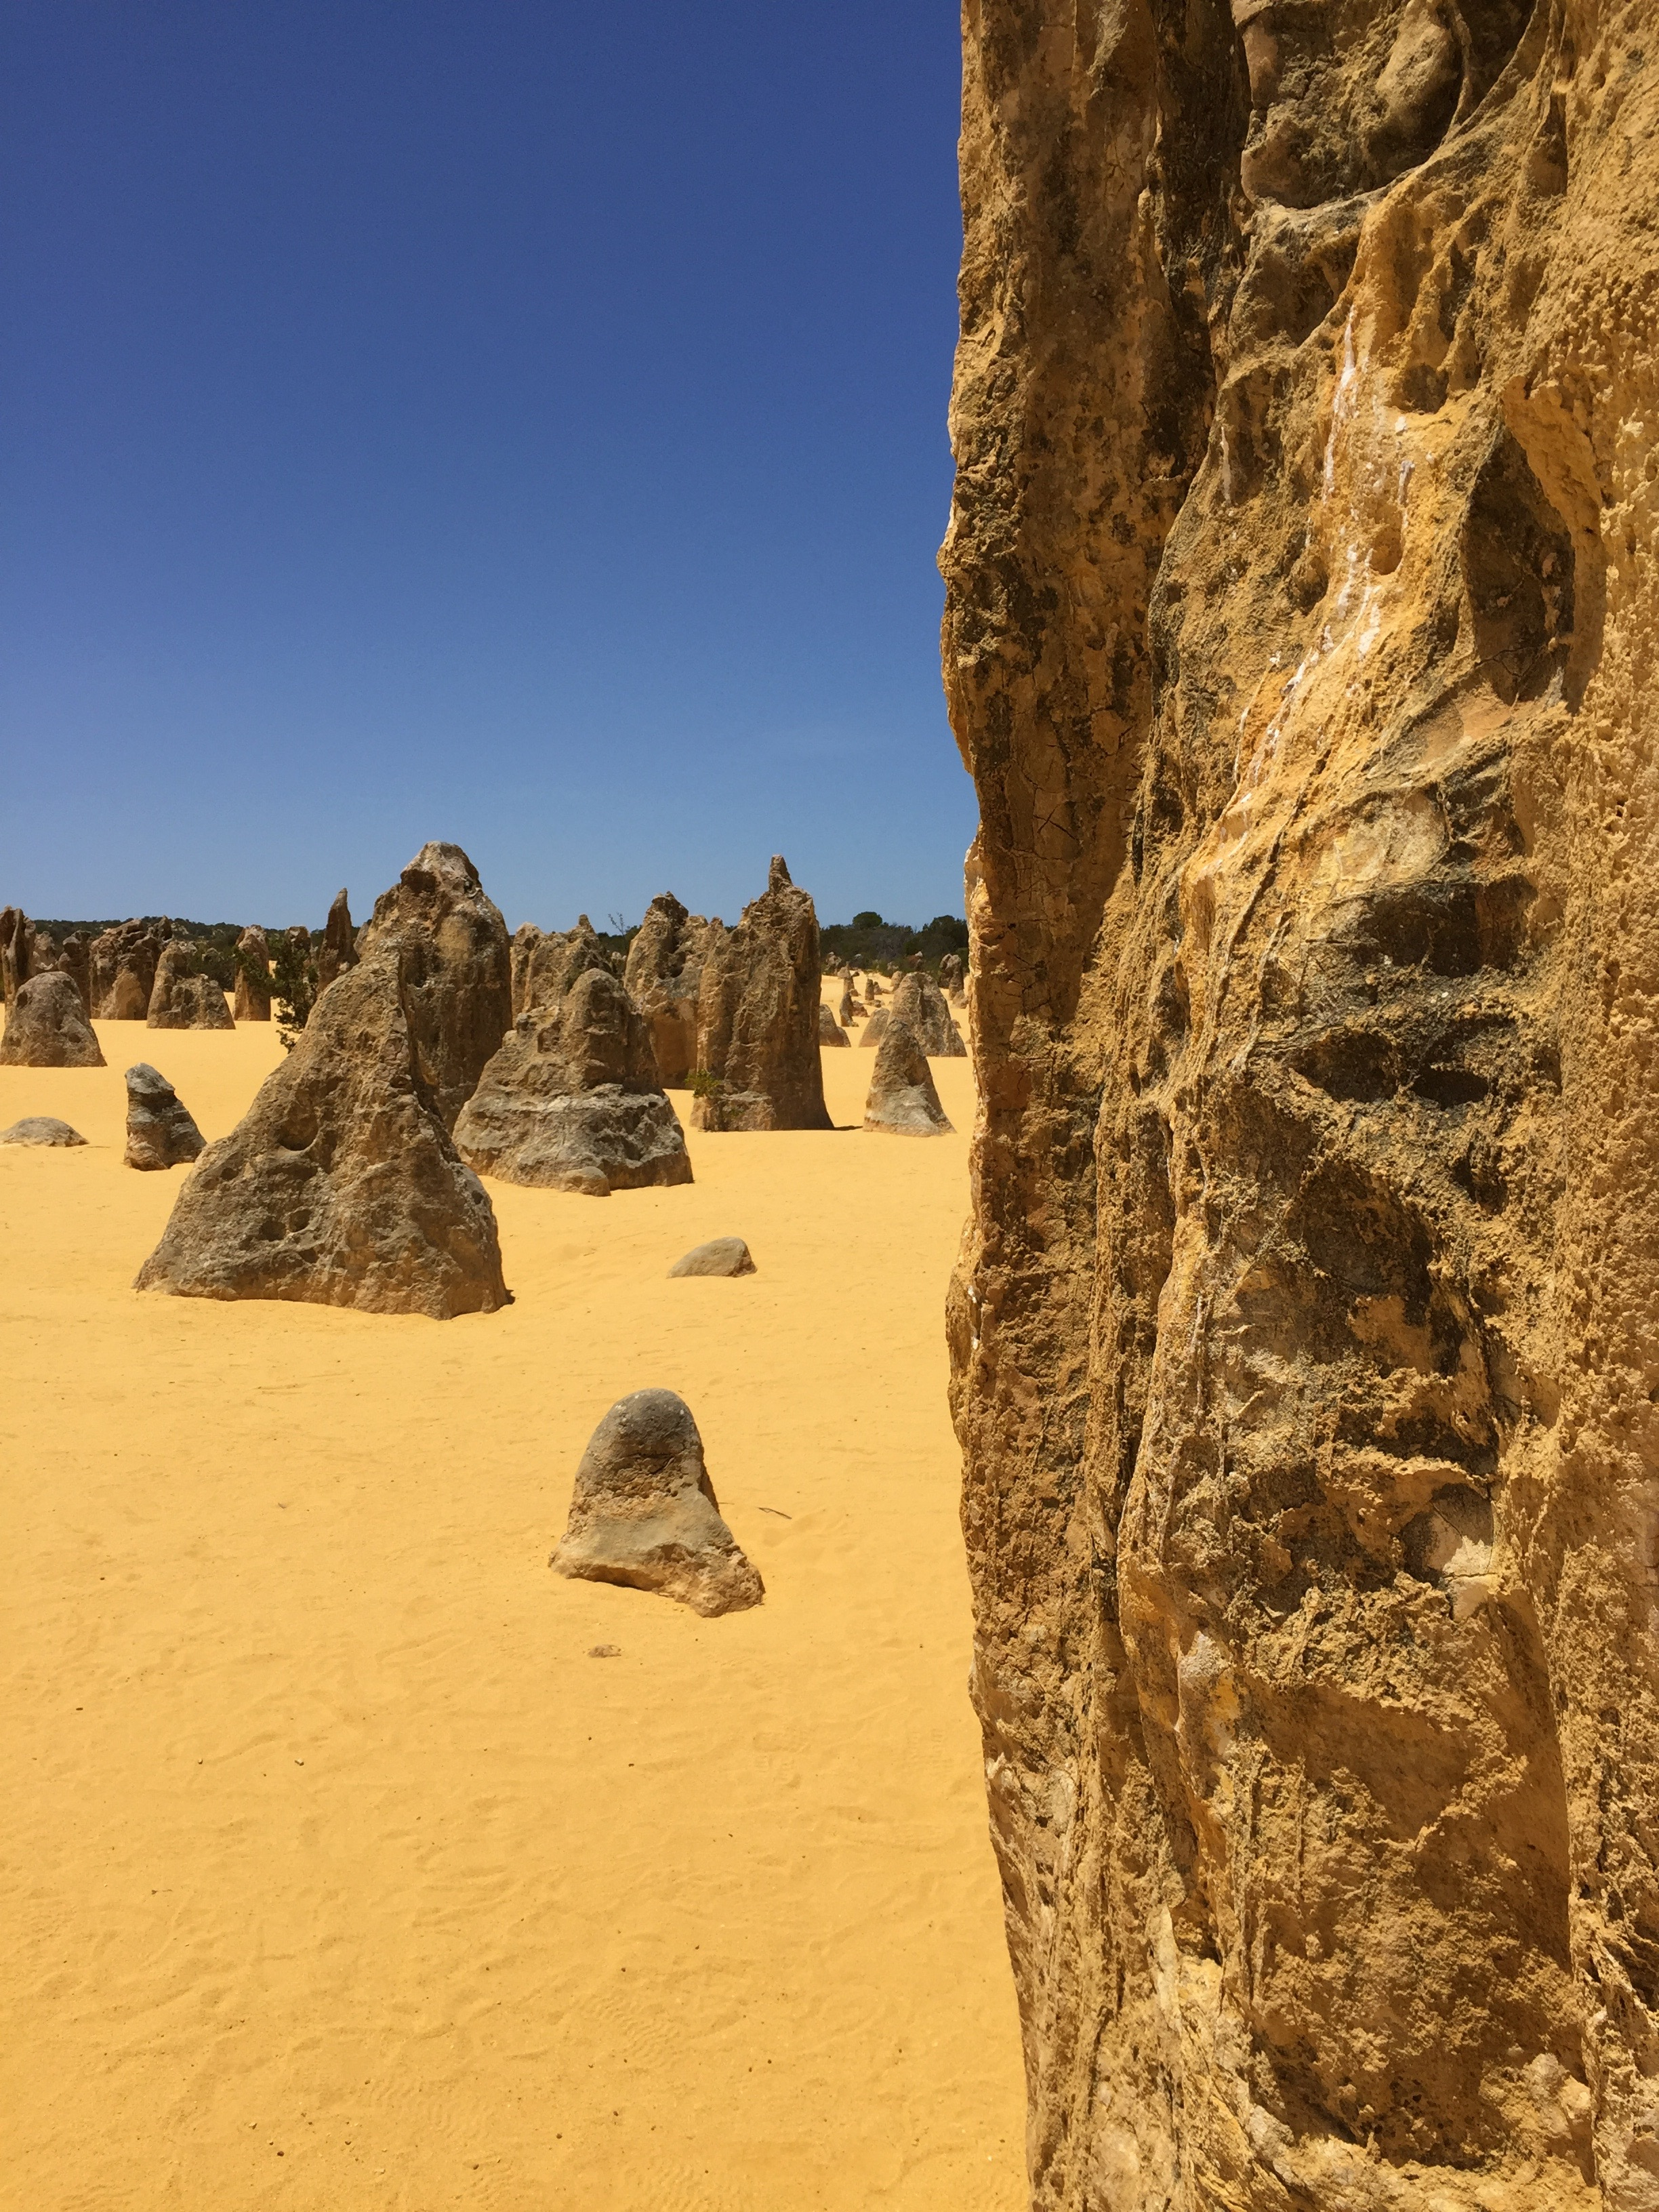 Limestone columns rise from the yellow dunes of Pinnacles in Nambung National Park (photo by Betsy Herbert)